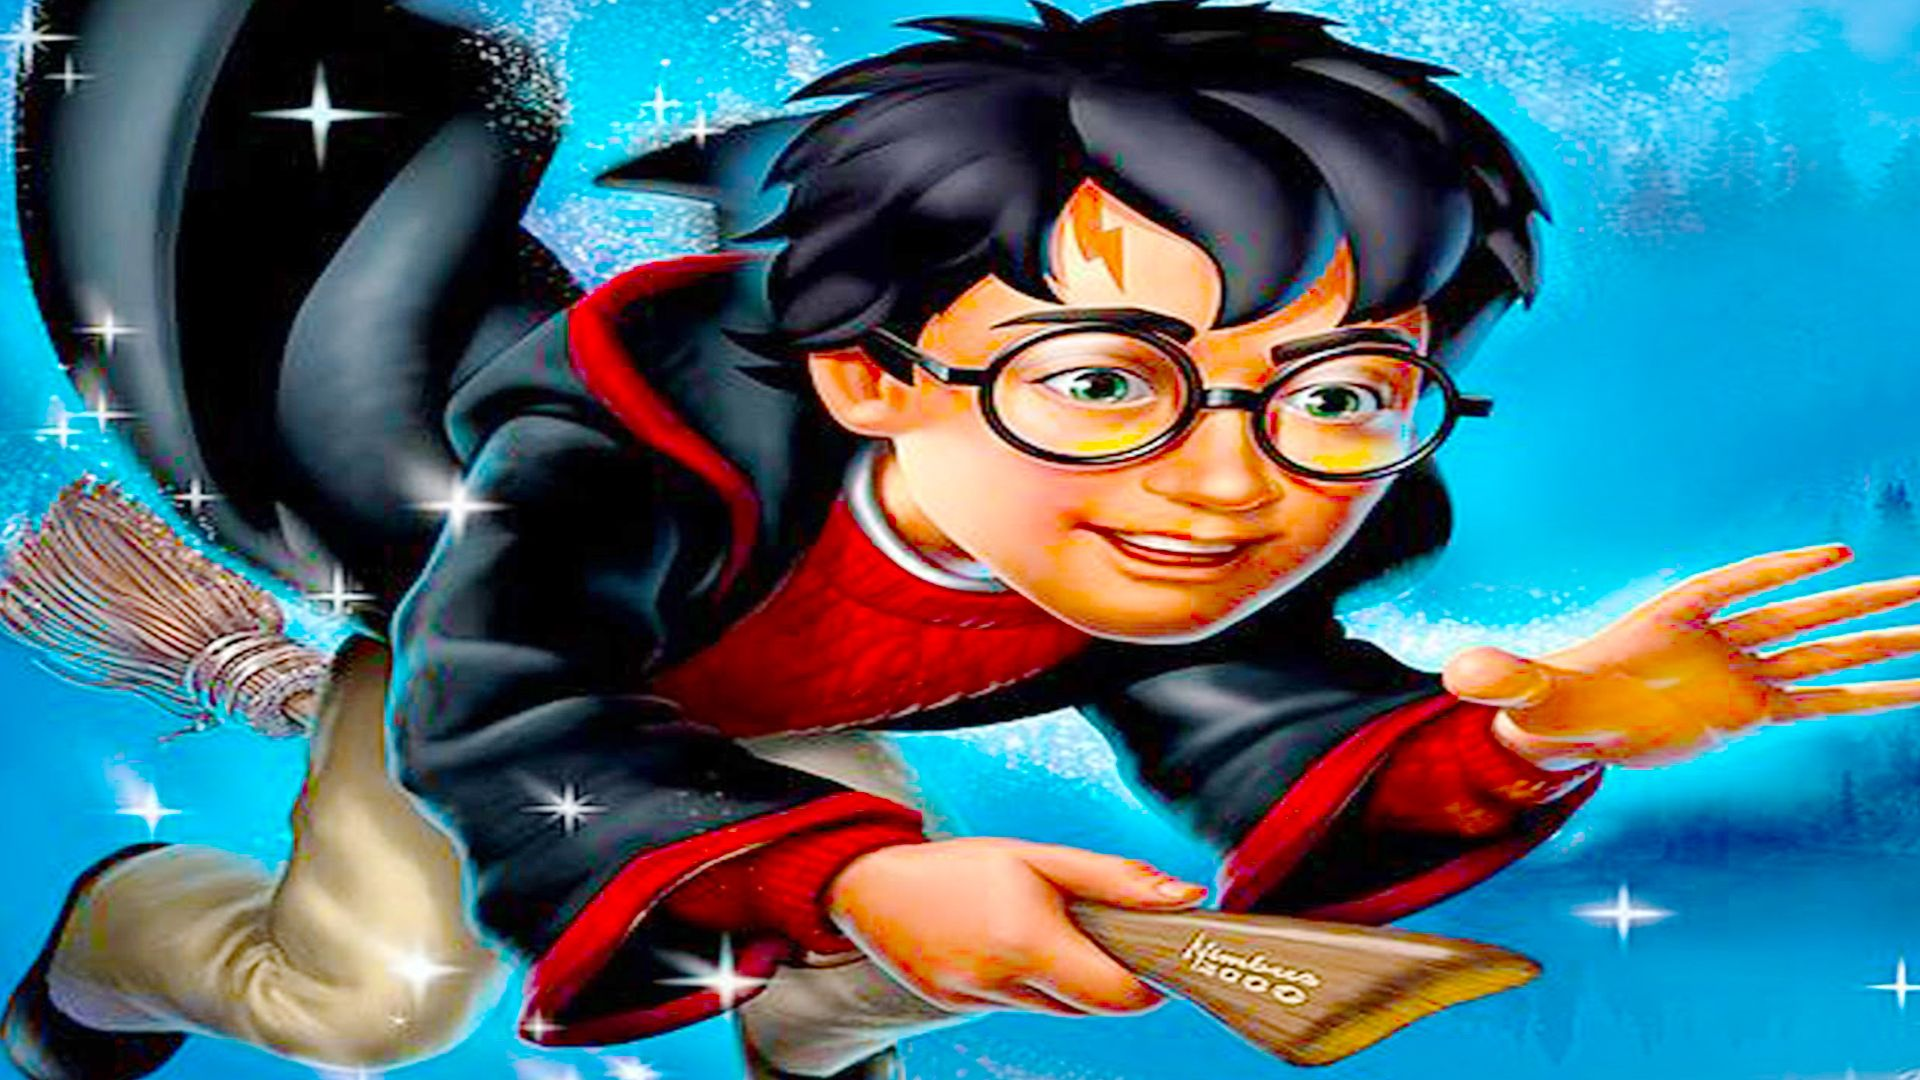 Harry potter the philosophers stone gameplay hd full